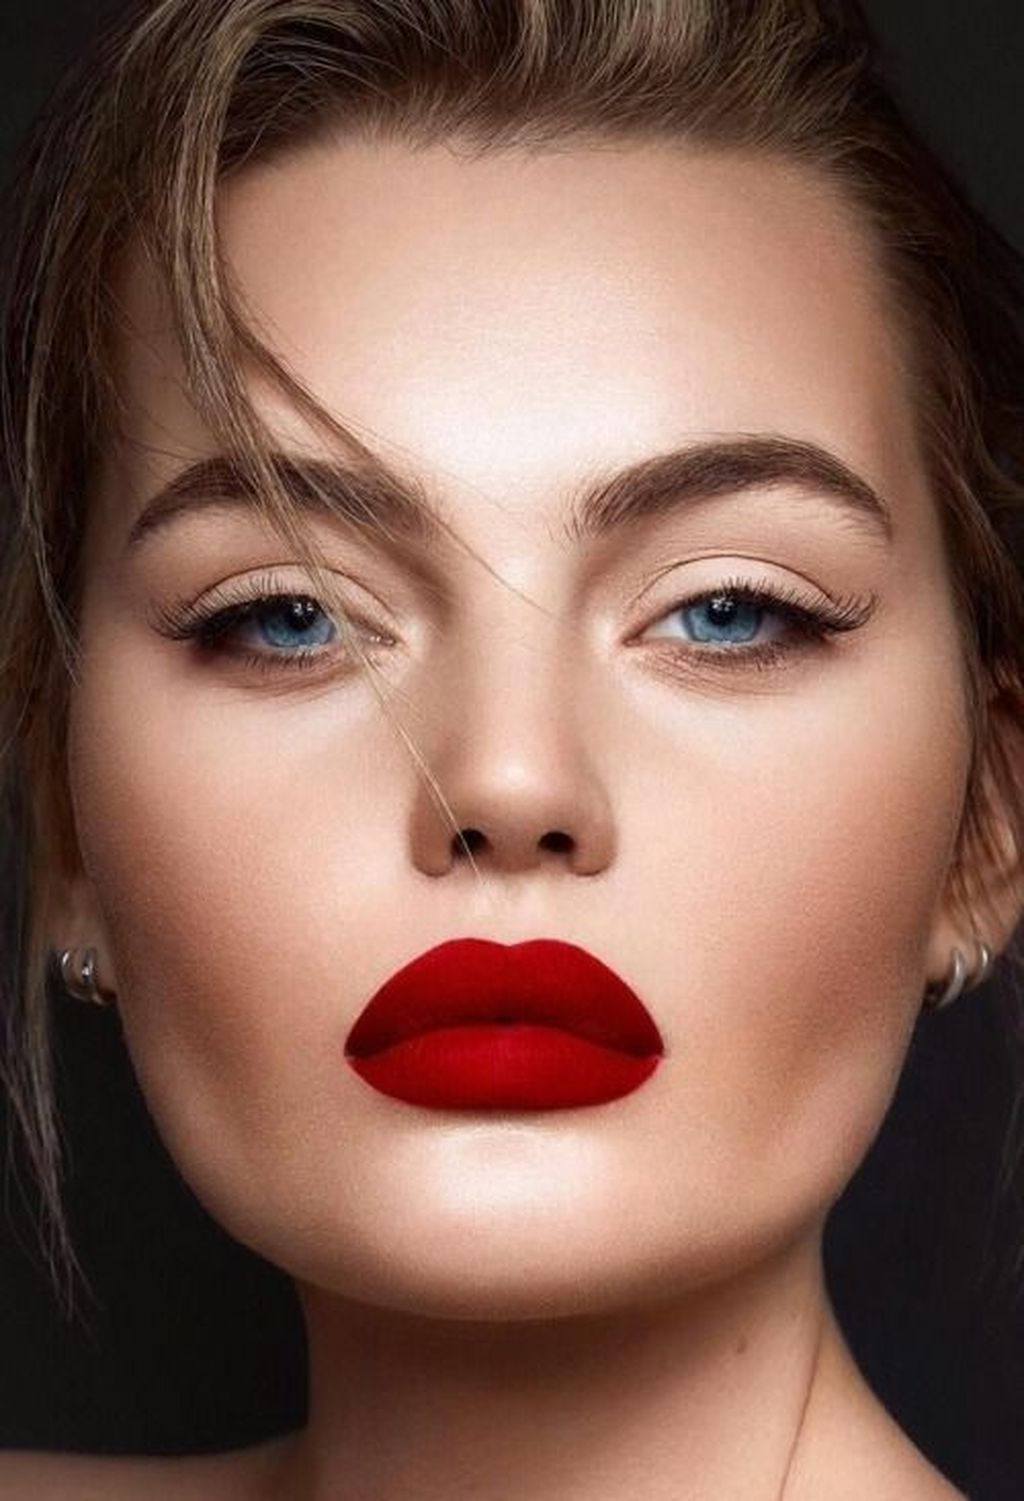 50 Ways To Use Red Lipstick To Make You More Attractive Faces